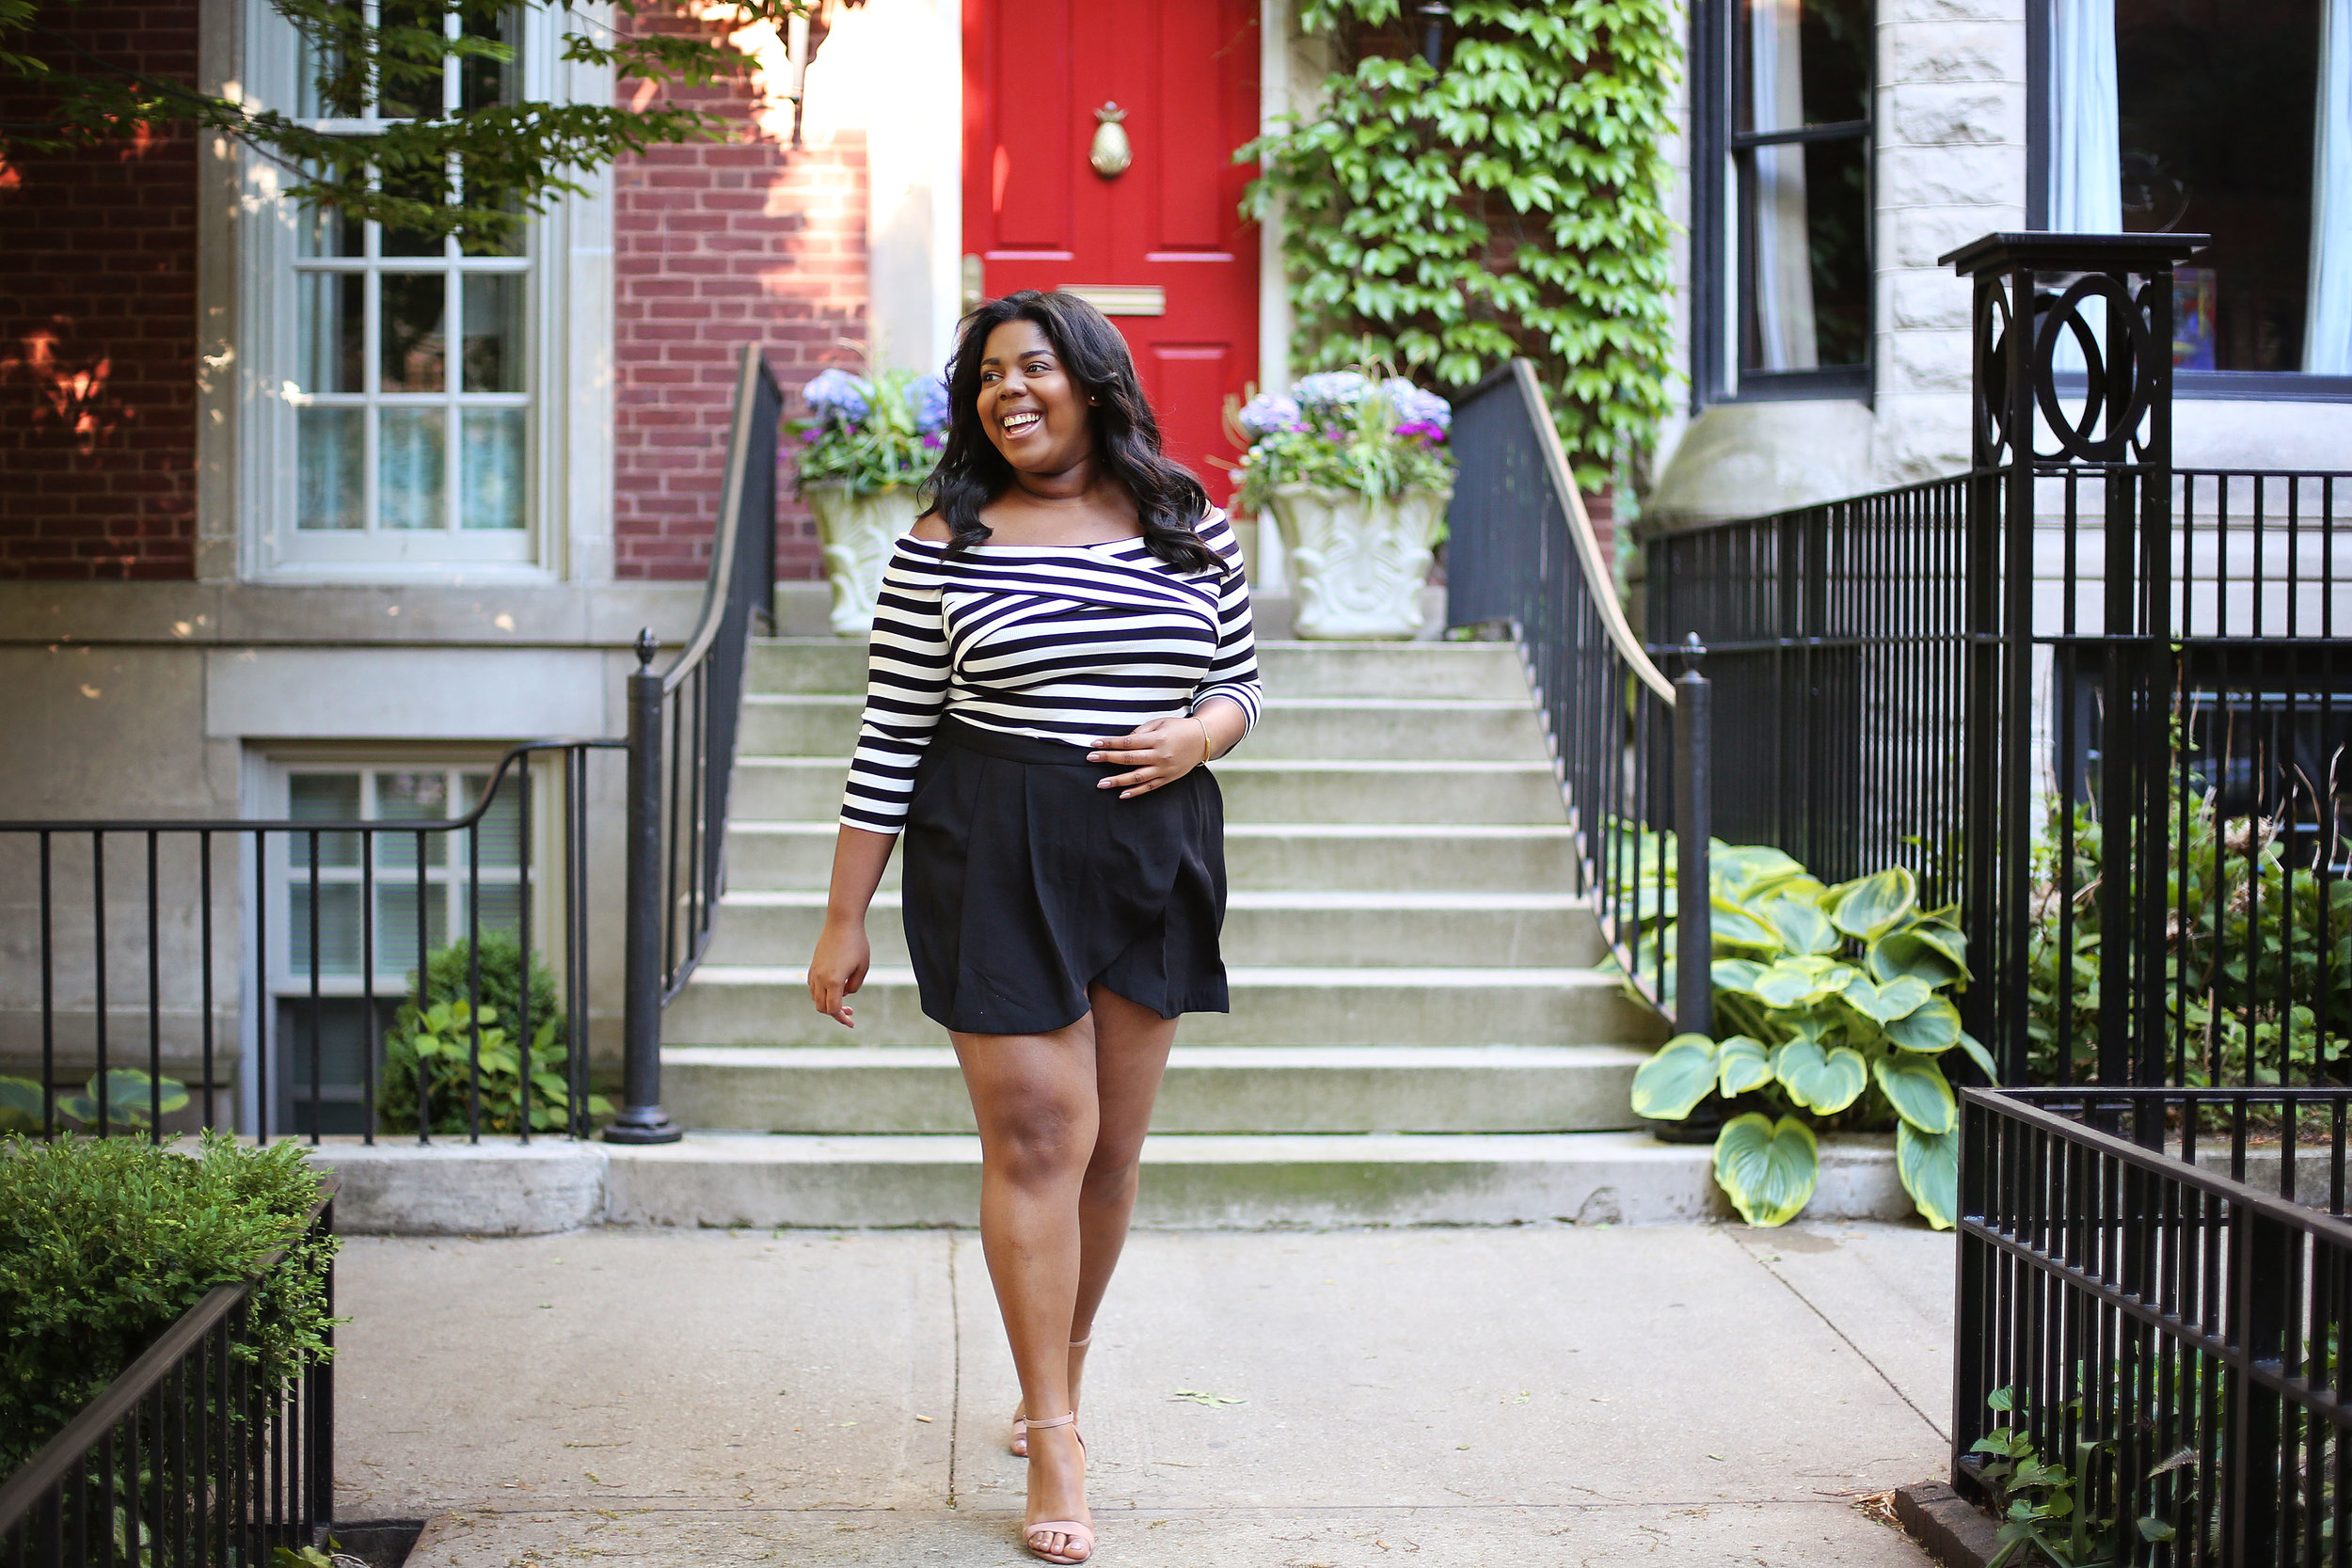 Look 2 - I loved the stripes so much that I wore them twice. This time I paired a black version with designer shorts.